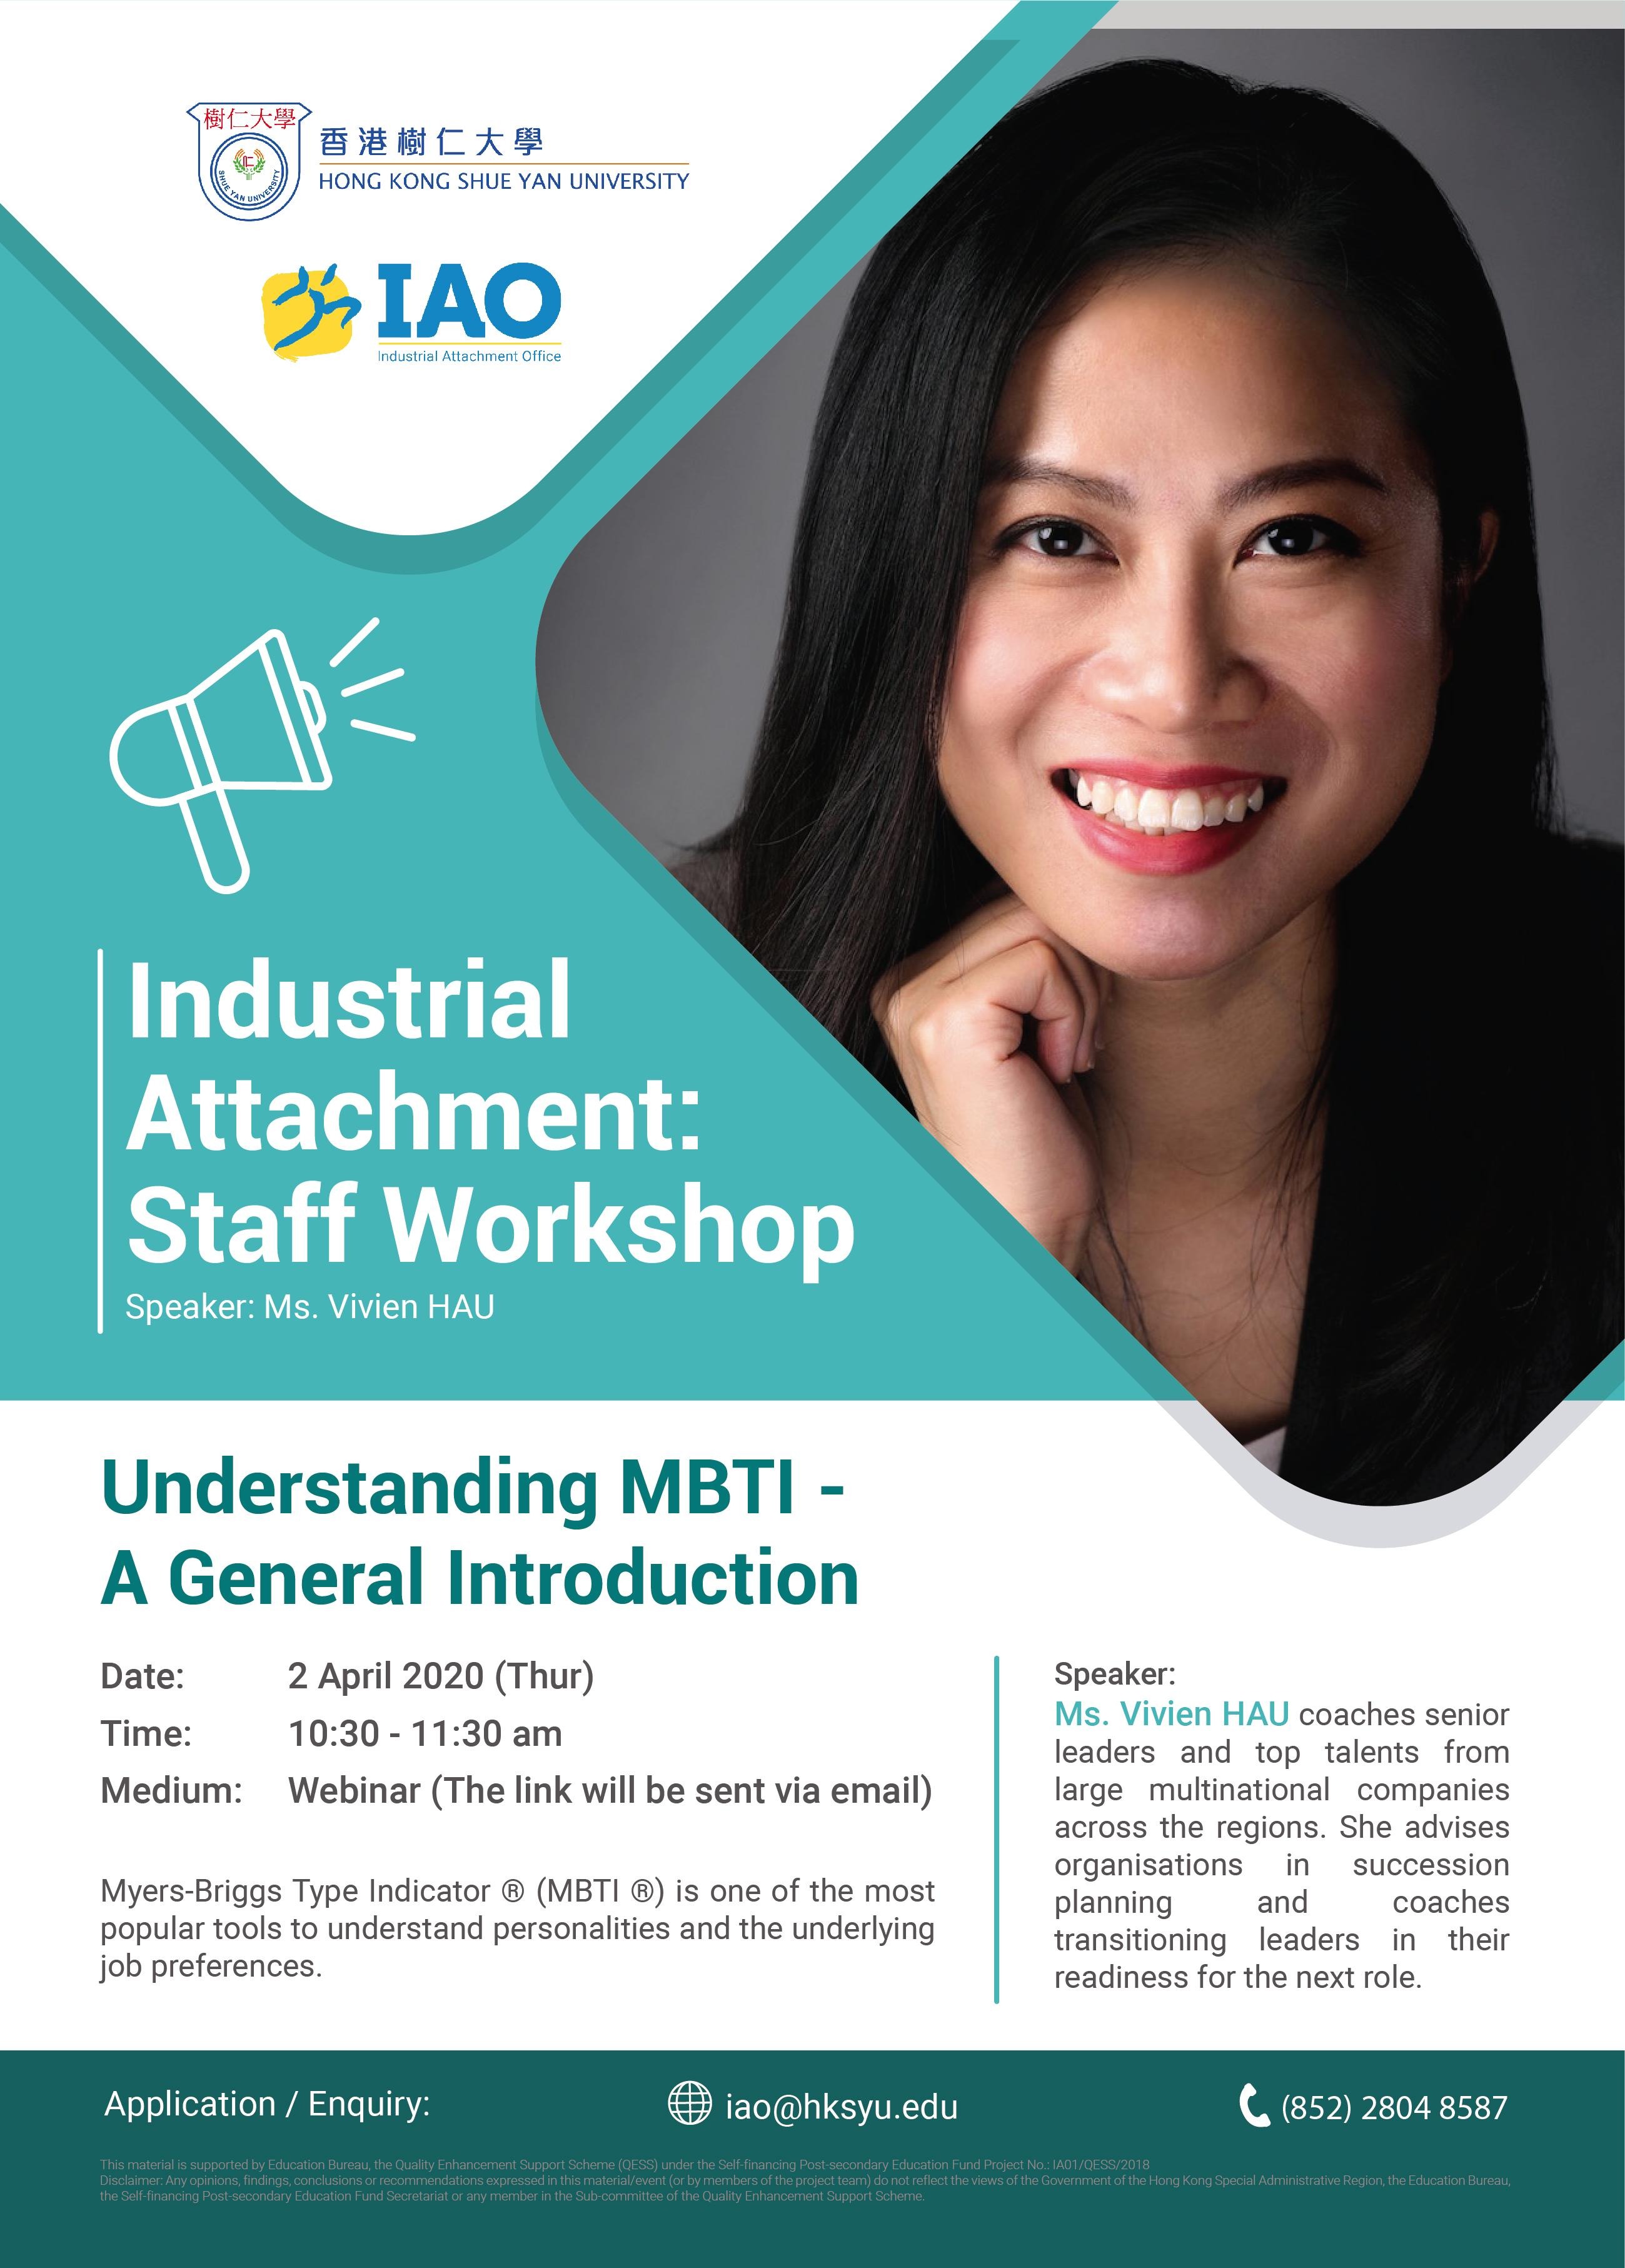 Understanding MBTI - A General Introduction 2 April 2020 (Thursday)